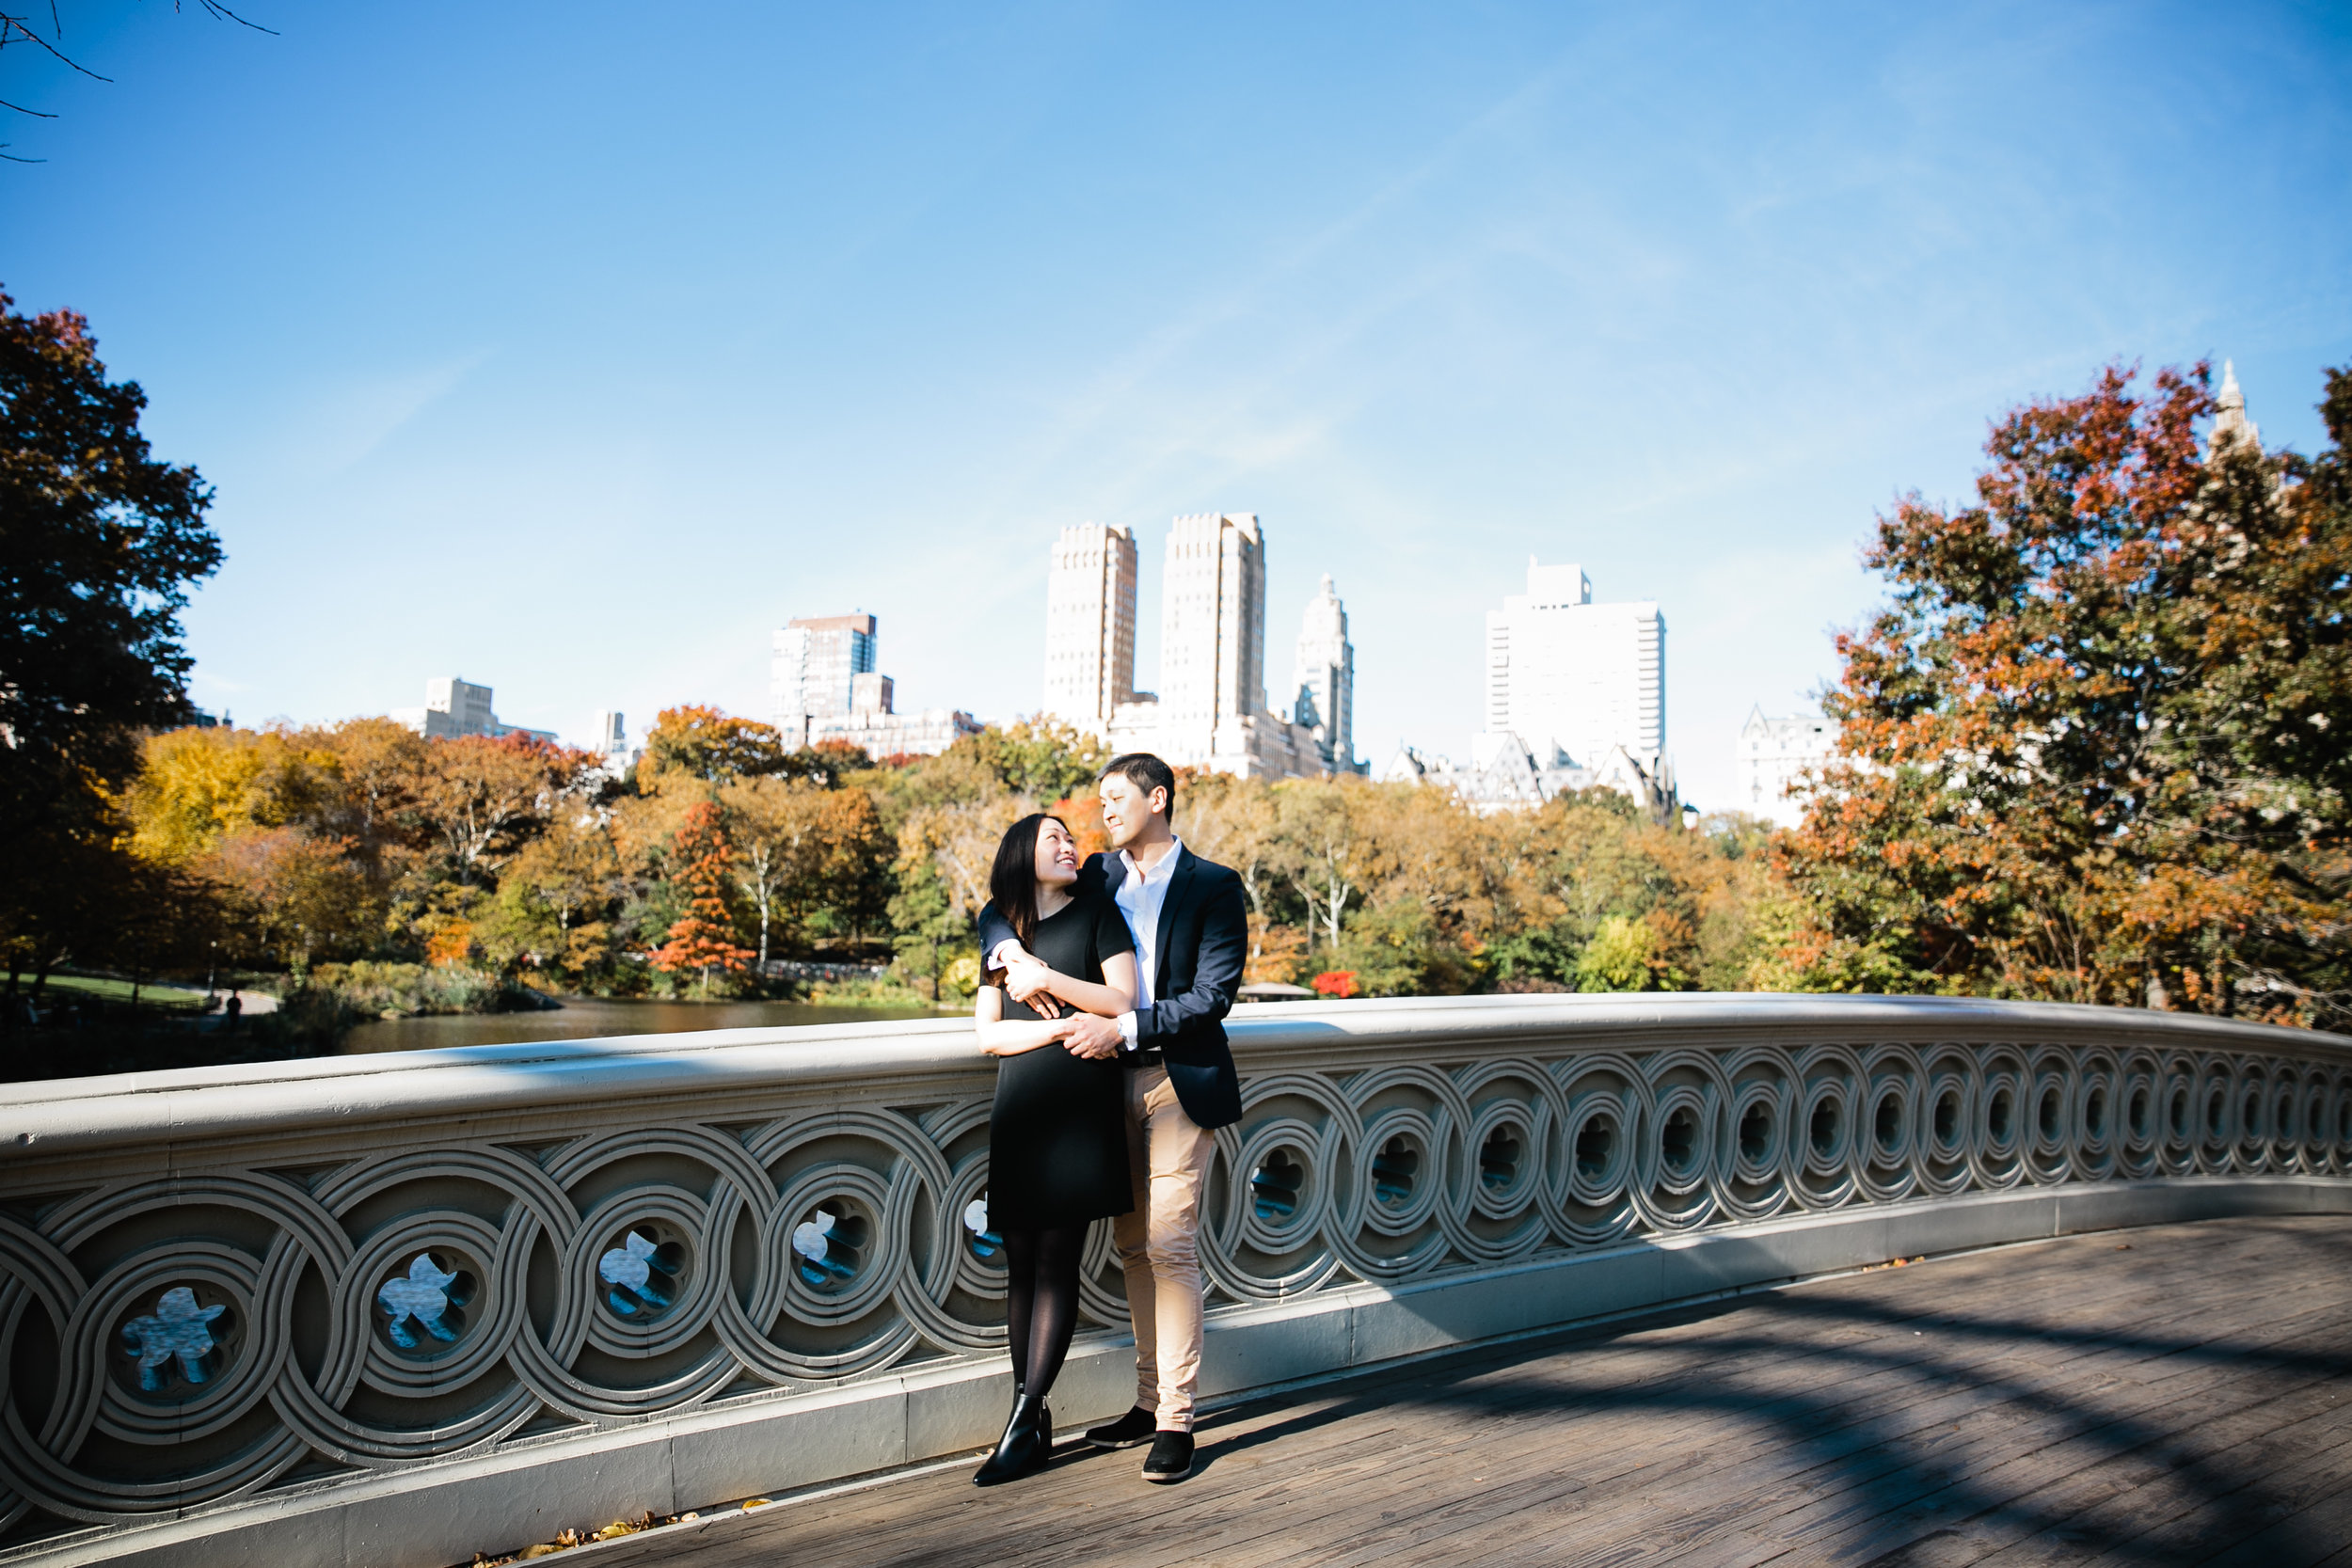 celestehernandez - nyc-central park engagement002.jpg